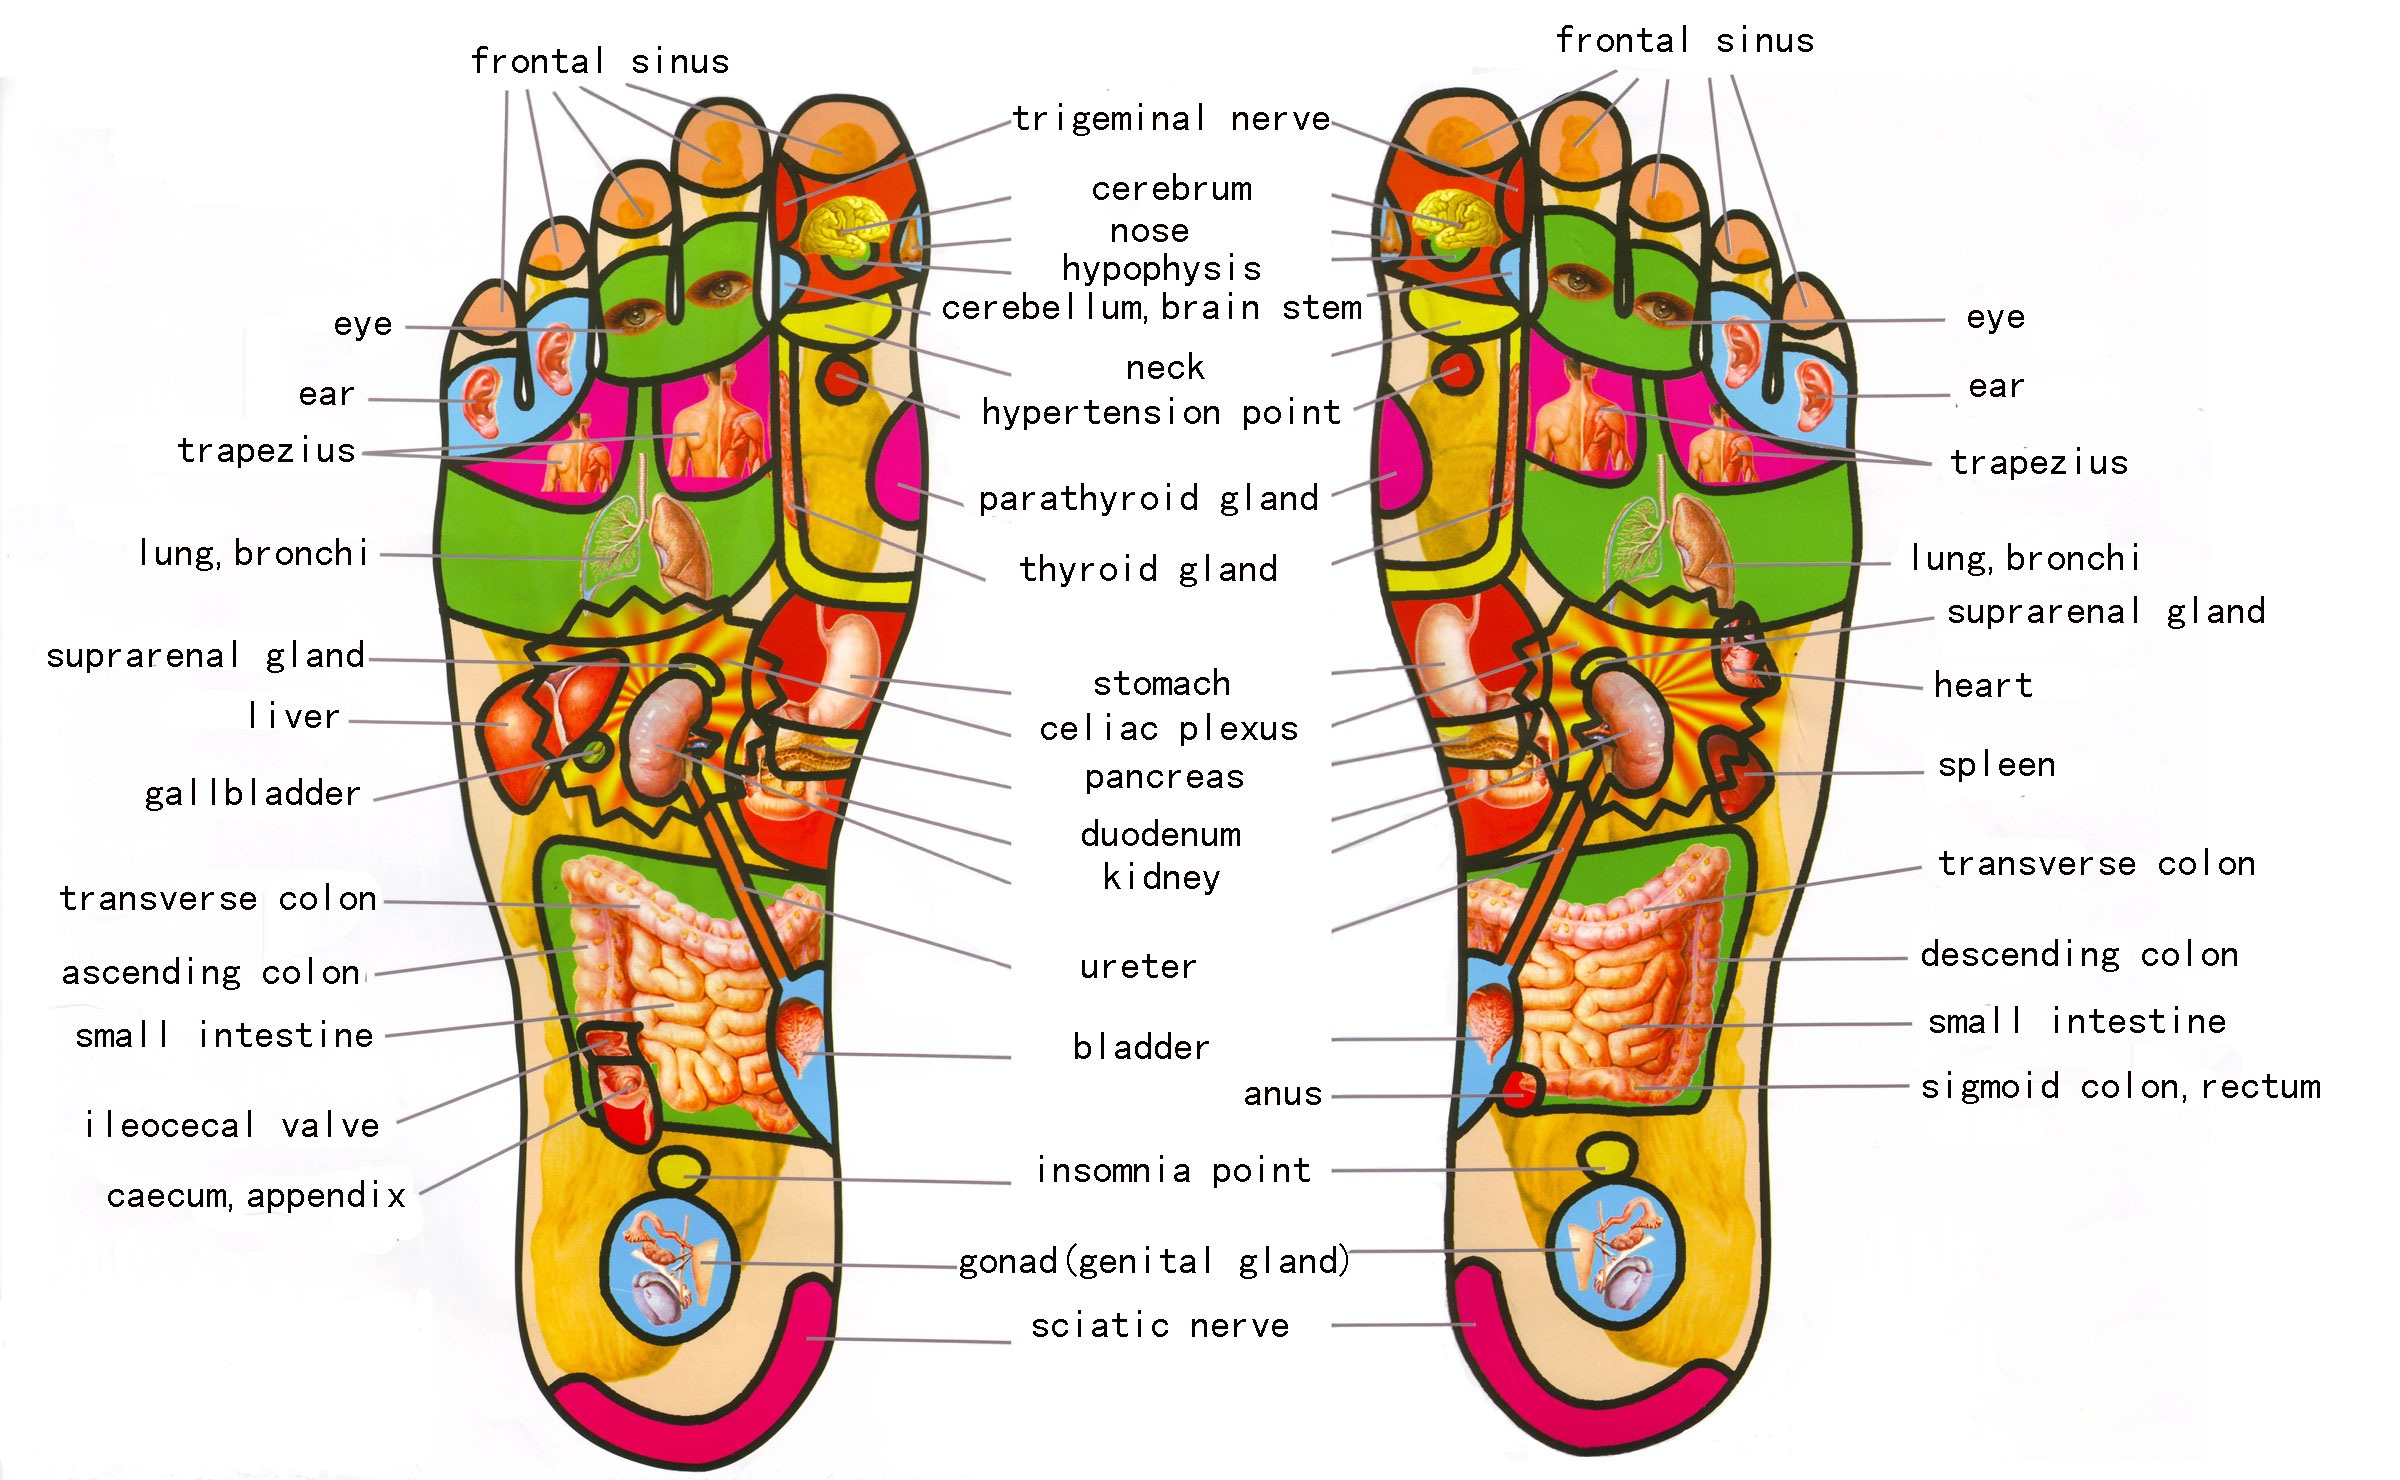 Foot Pain Diagram Your Foot Has The Full Map Of Your Body And Here Is How To Read It